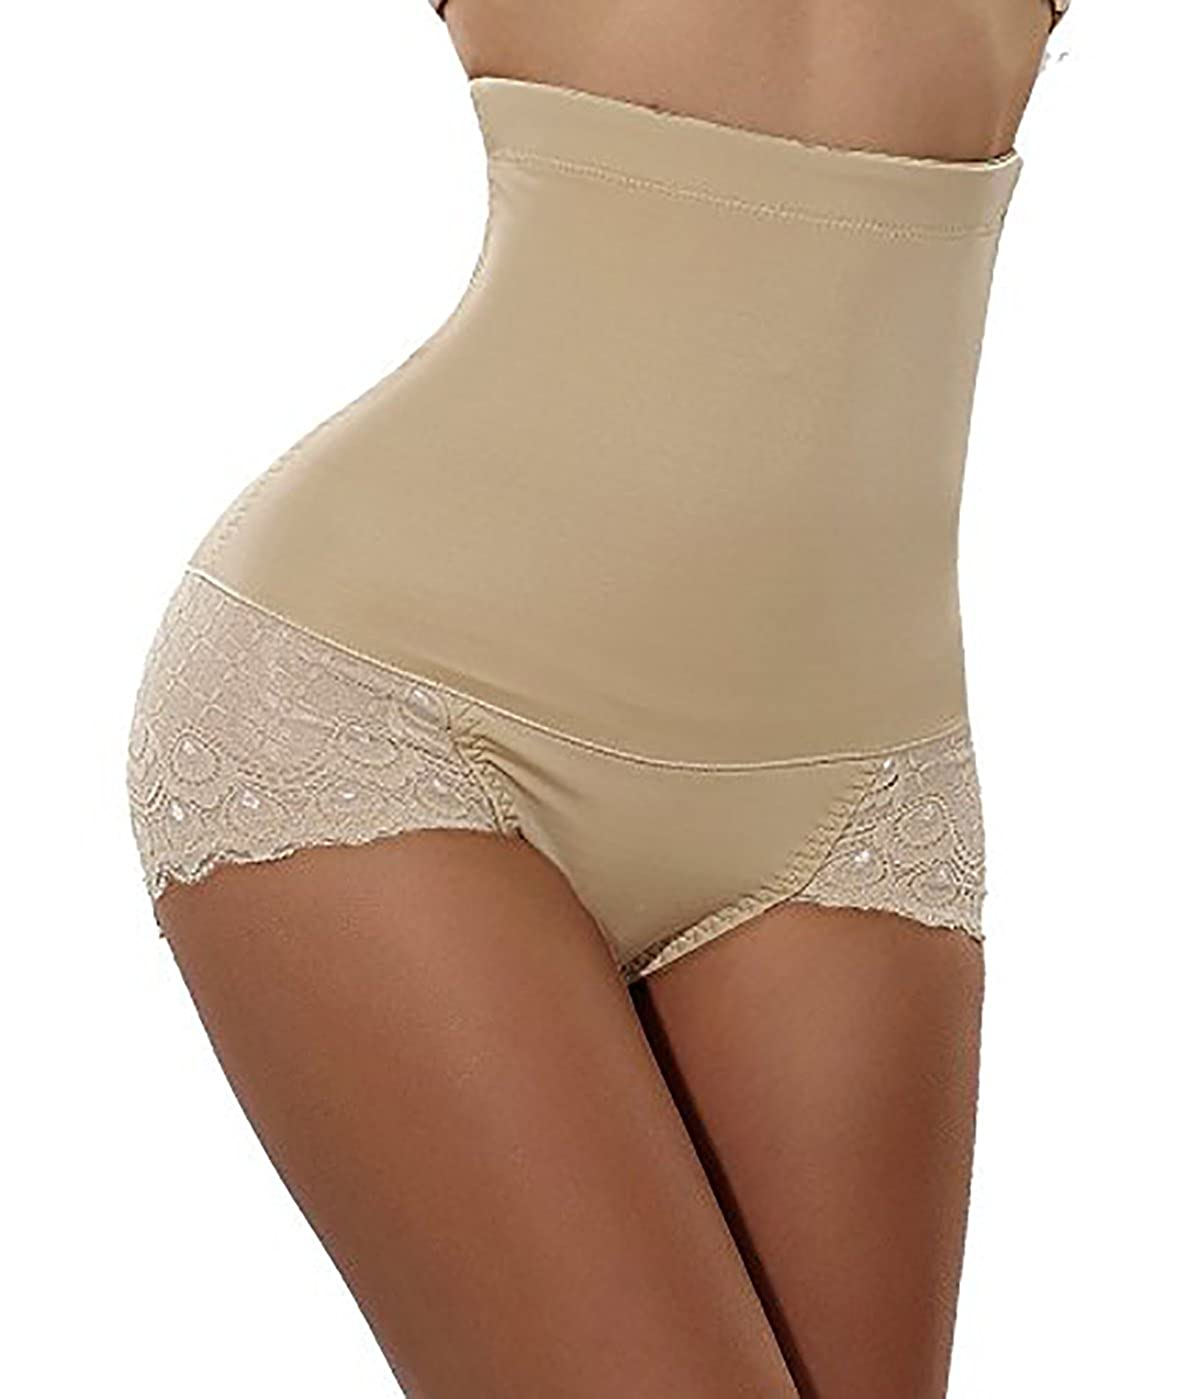 681edce0a04b2 Top 10 wholesale Strapless Body Shaper With Shorts - Chinabrands.com